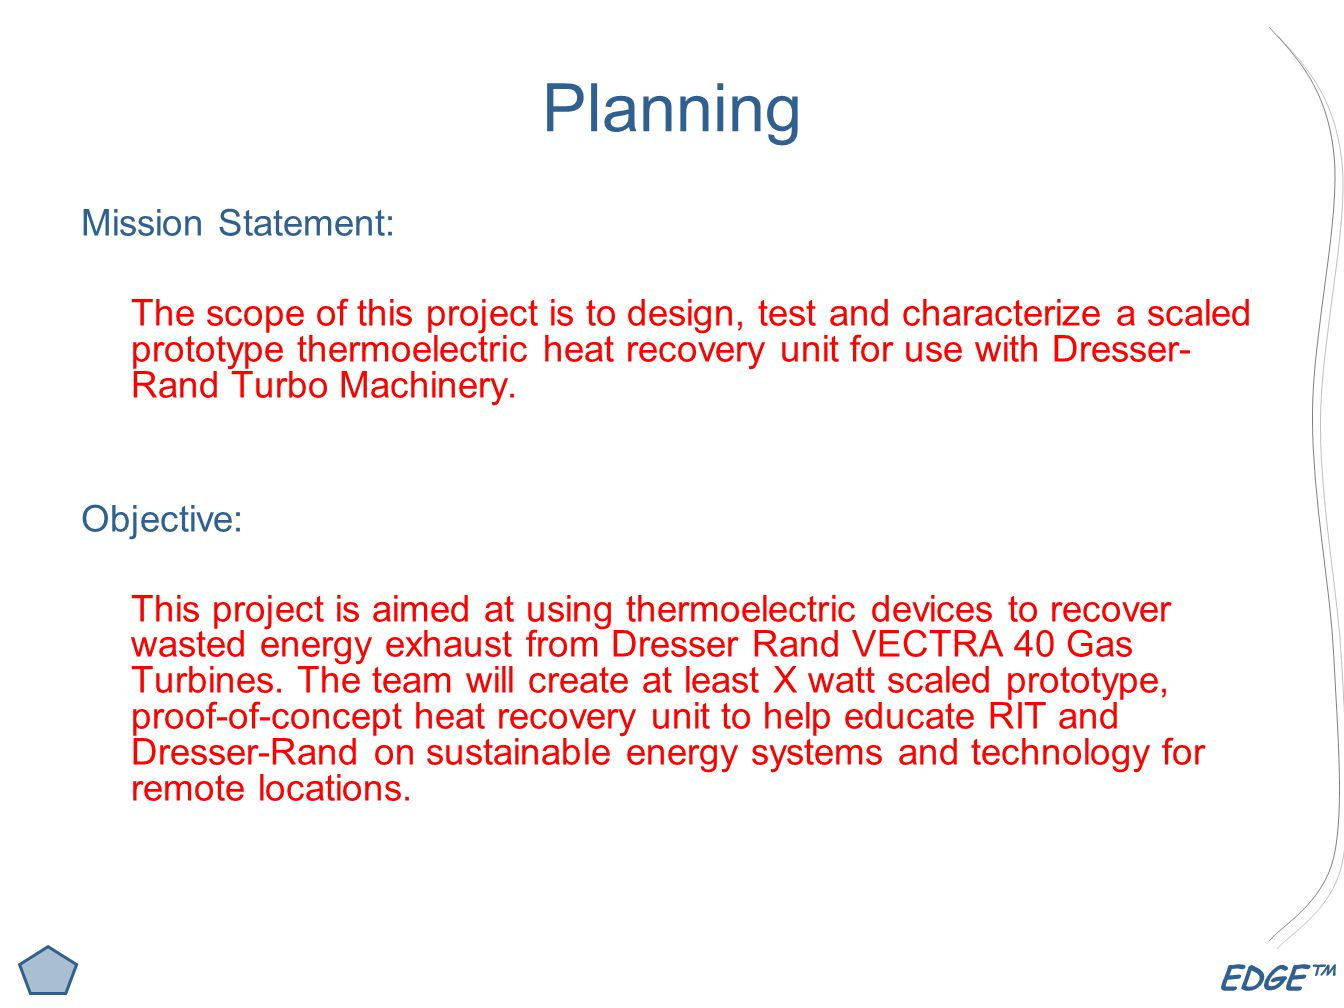 EDGE™ Planning Mission Statement: The scope of this project is to design, test and characterize a scaled prototype thermoelectric heat recovery unit for use with Dresser- Rand Turbo Machinery.